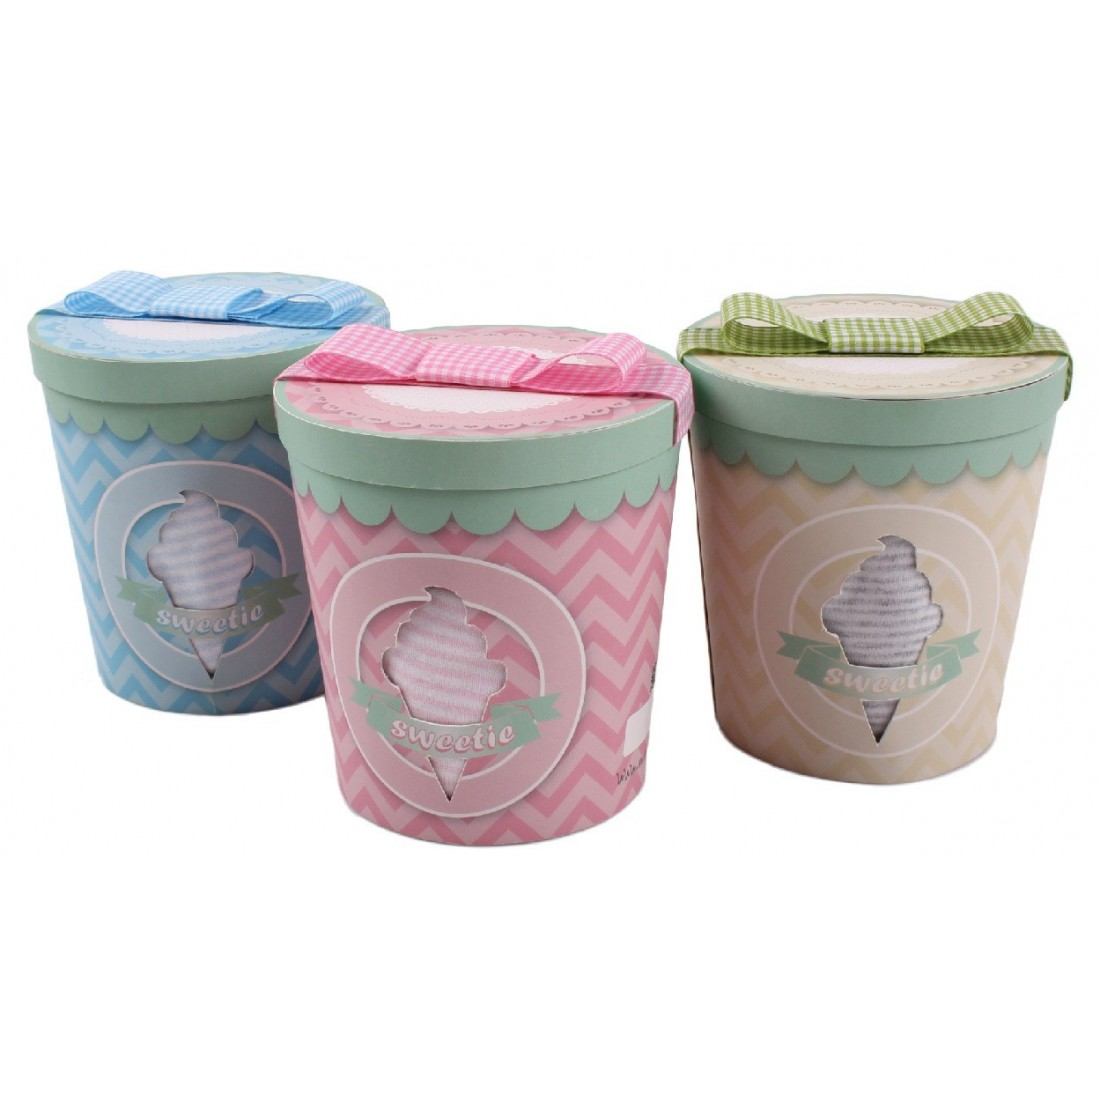 Coffret pot de glace mixte